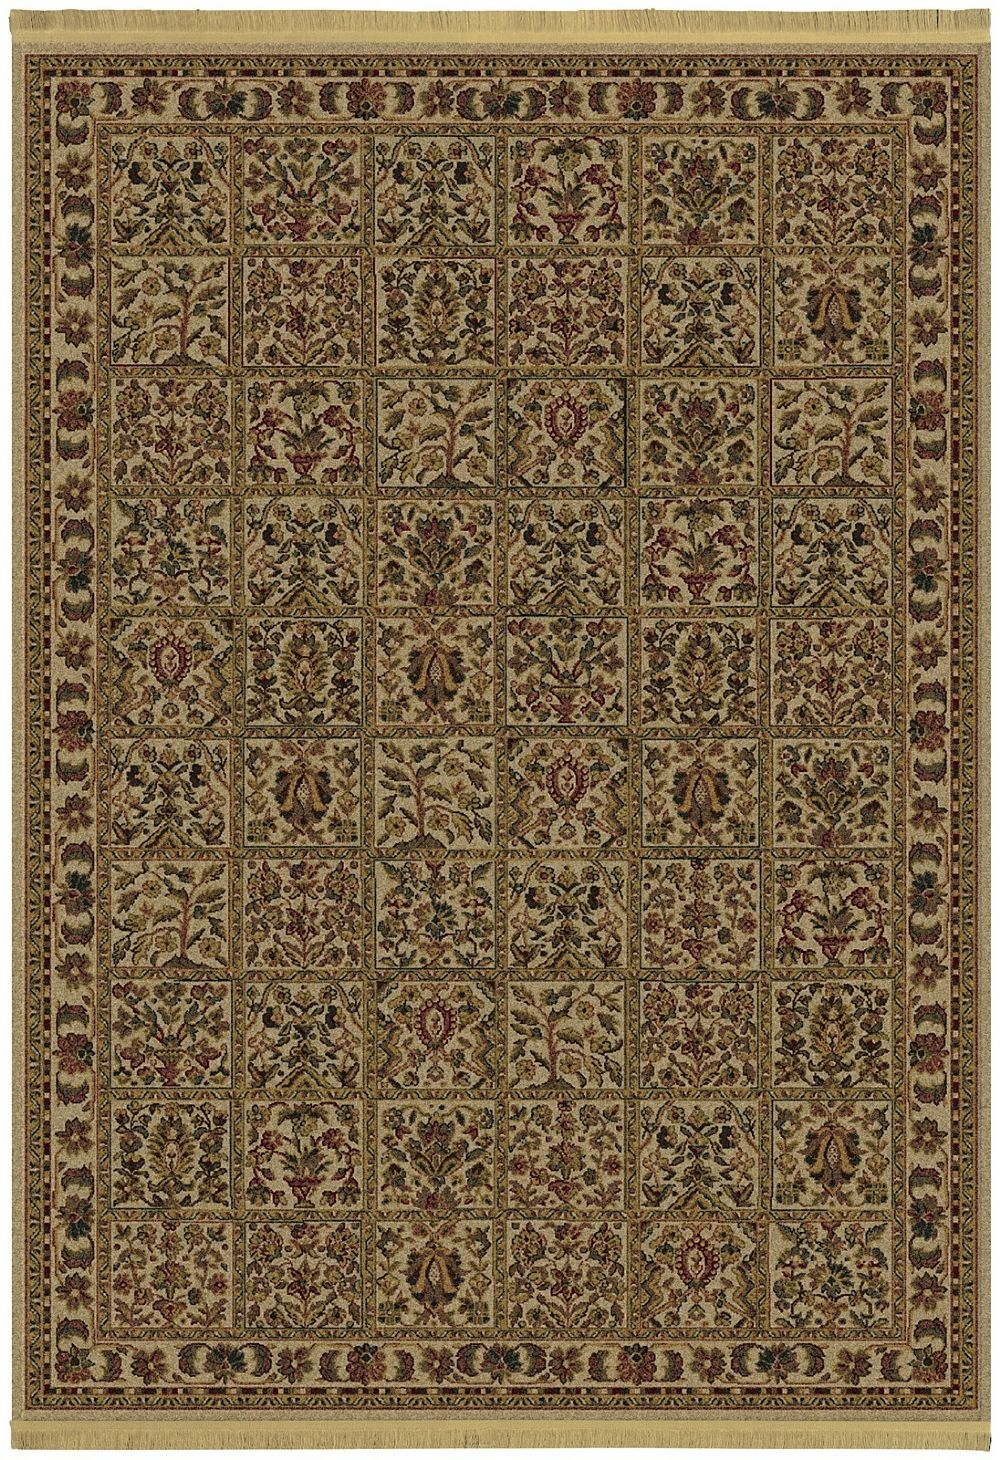 shaw classic style traditional area rug collection